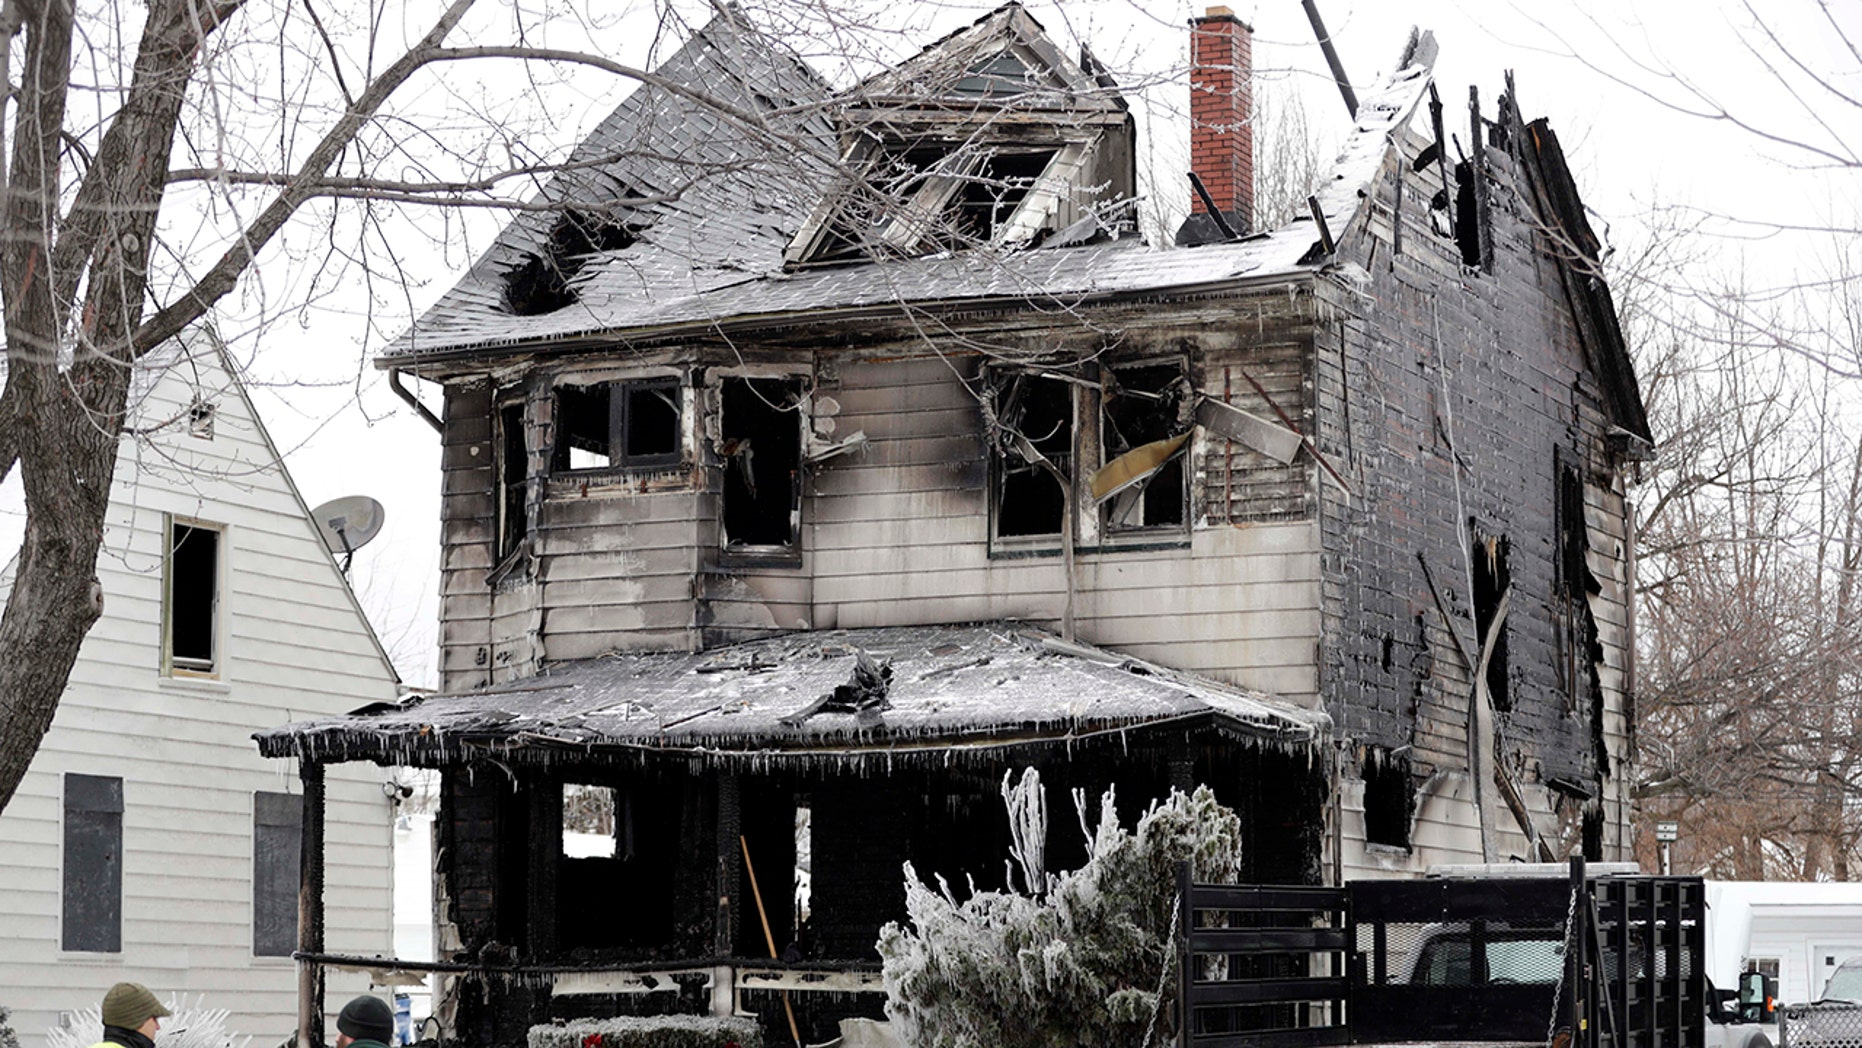 Four bodies were found at the site of a house fire, Tuesday, Jan. 30, 2018, in Cleveland.